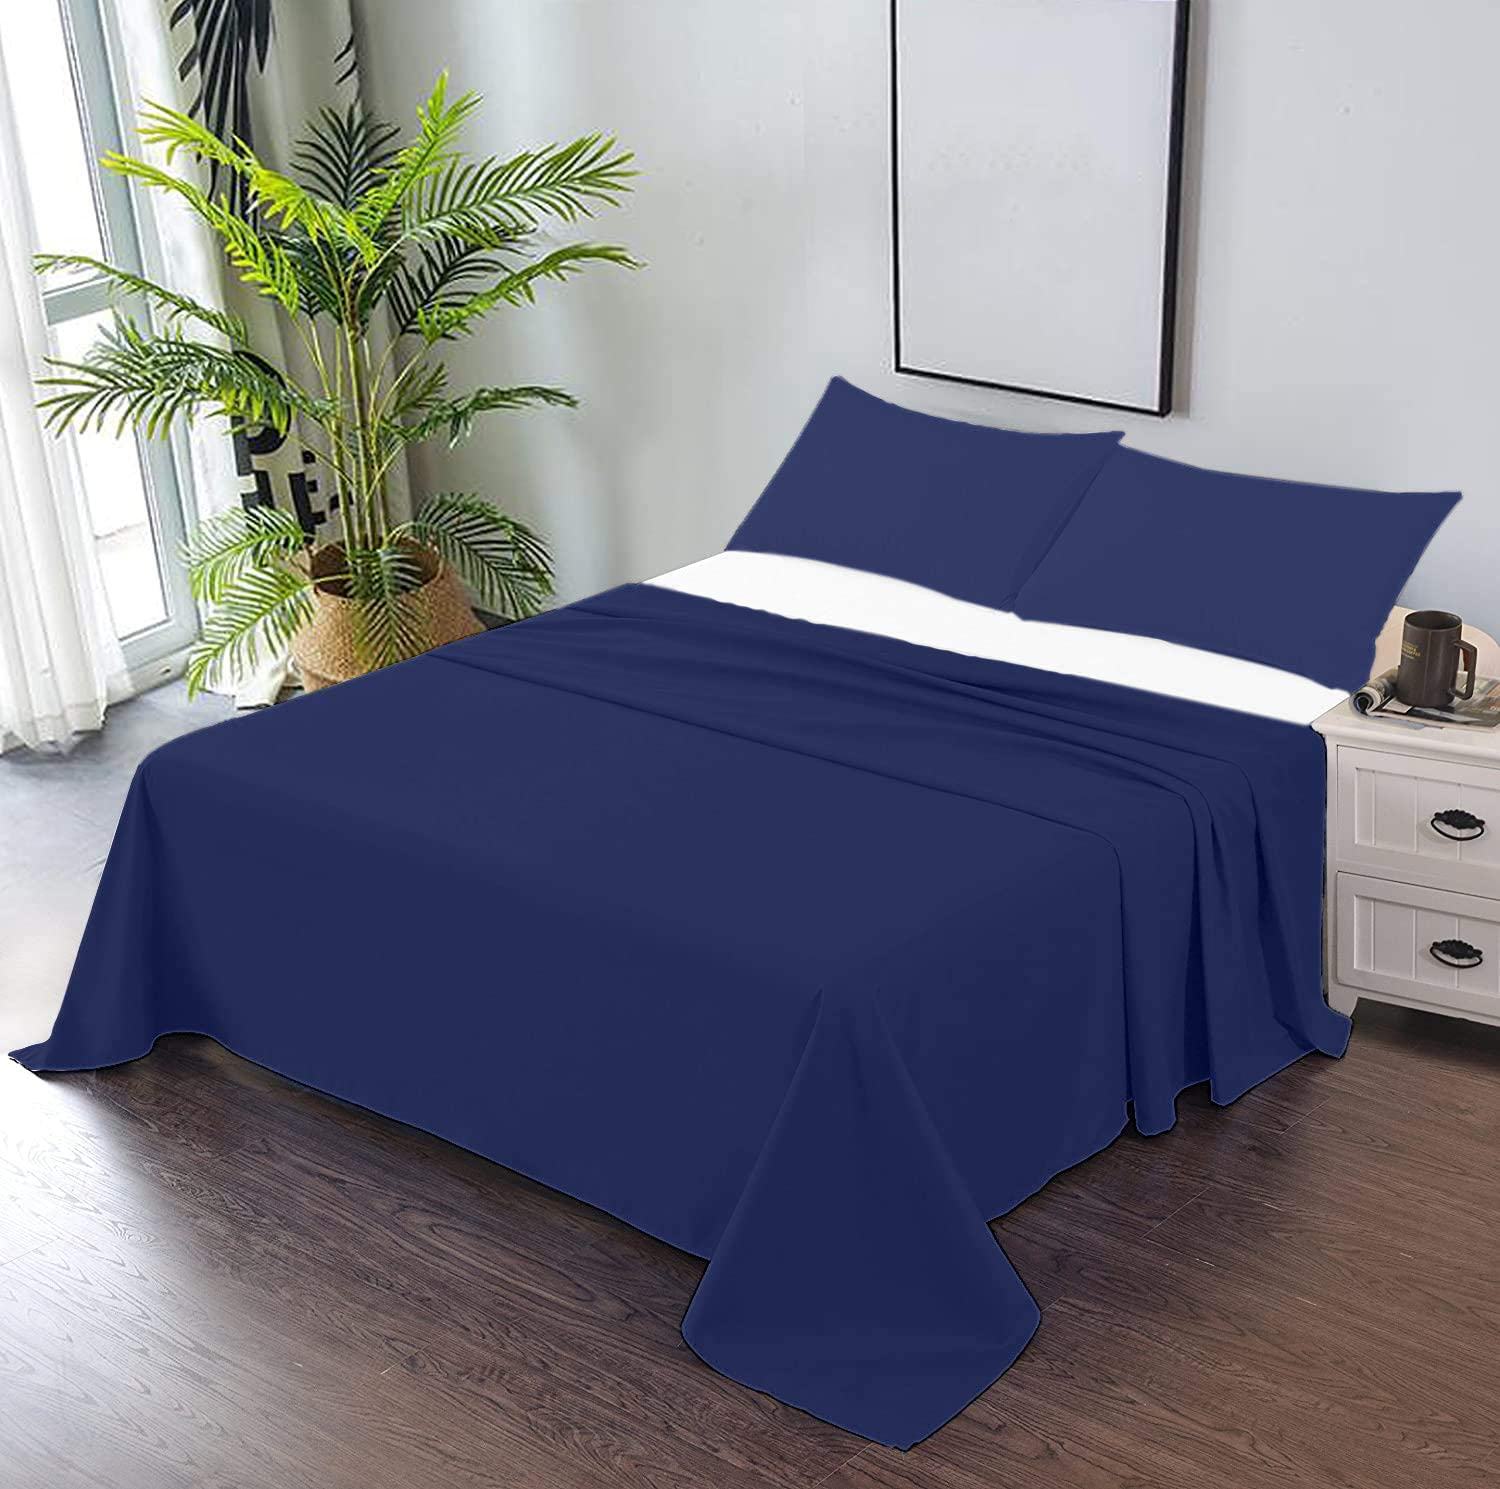 Trend Bedding Mart 3 PC Factory outlet Solid Bedsheet Flat with 2 Top Sheet 1 - National uniform free shipping